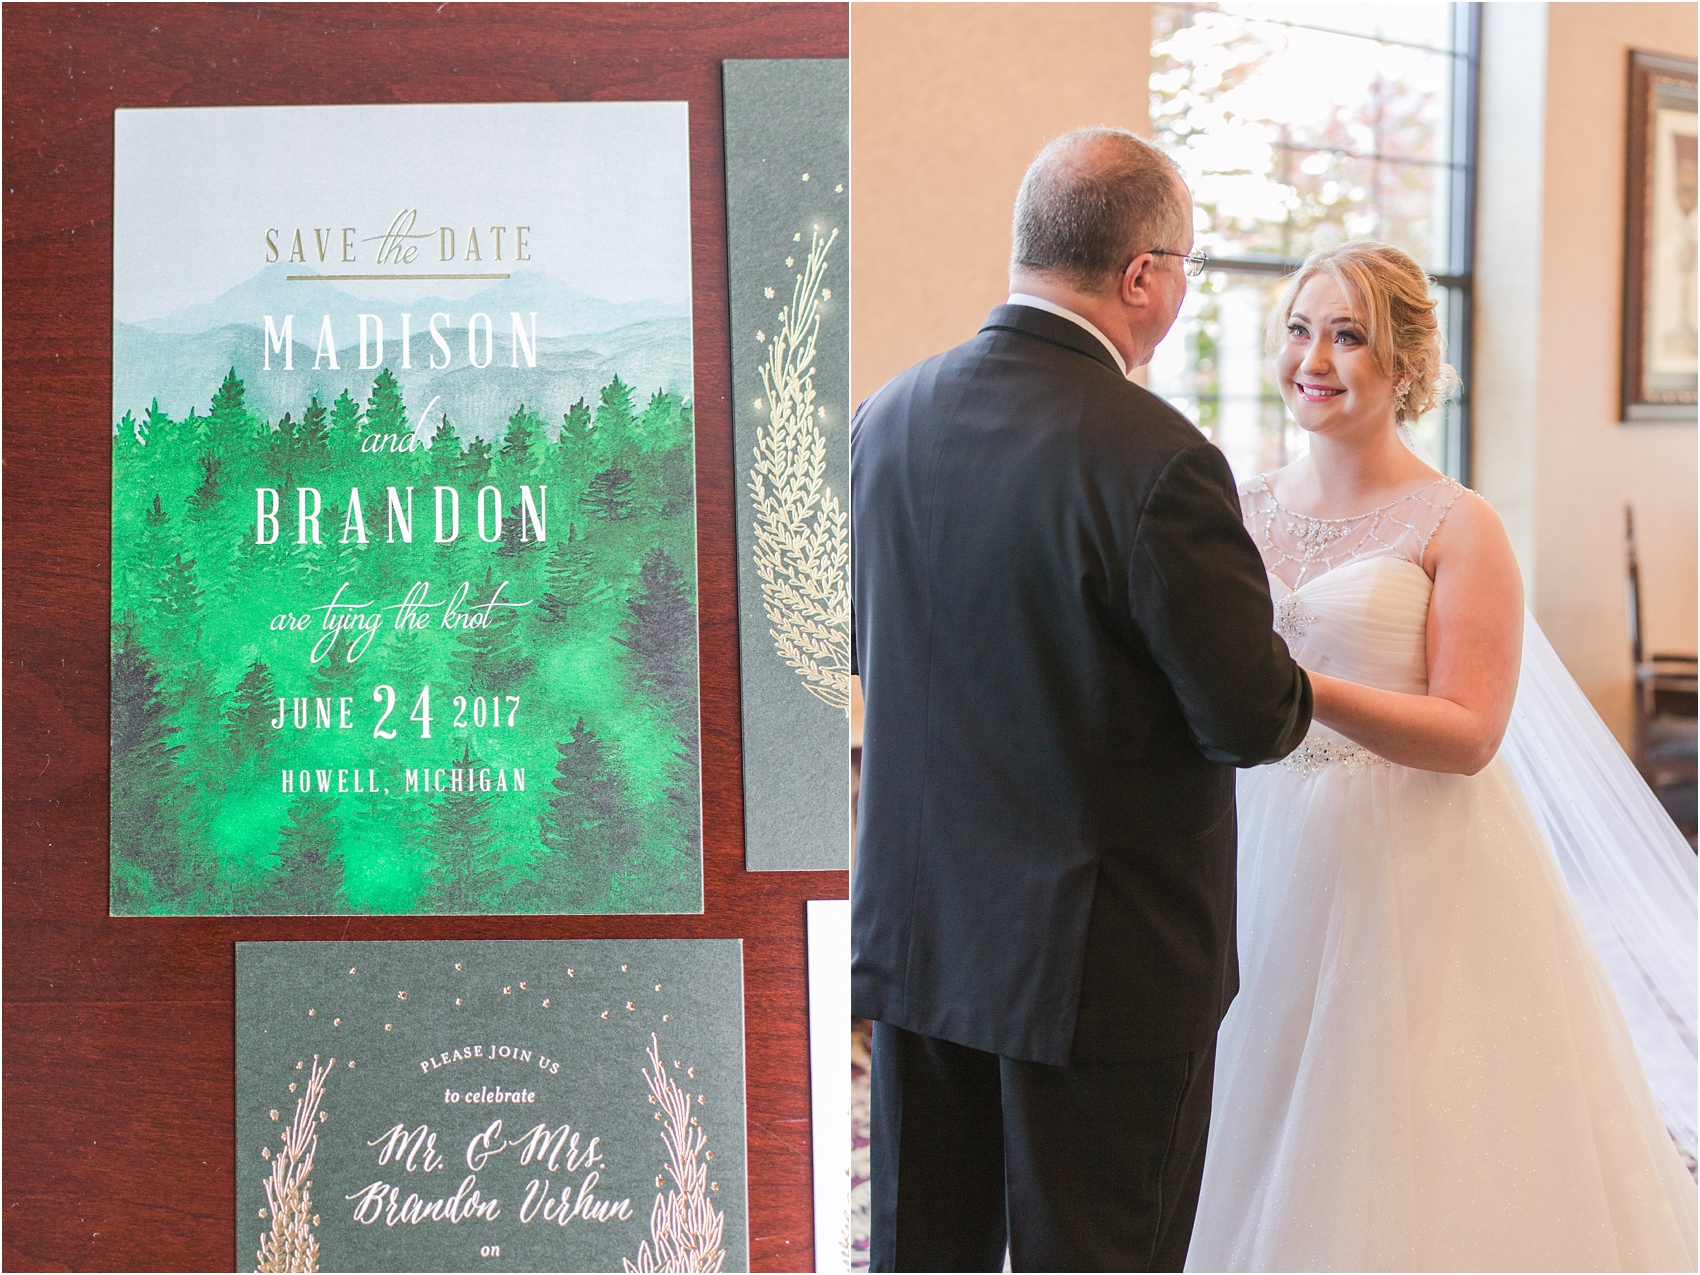 lord-of-the-rings-inspired-wedding-photos-at-crystal-gardens-in-howell-mi-by-courtney-carolyn-photography_0019.jpg